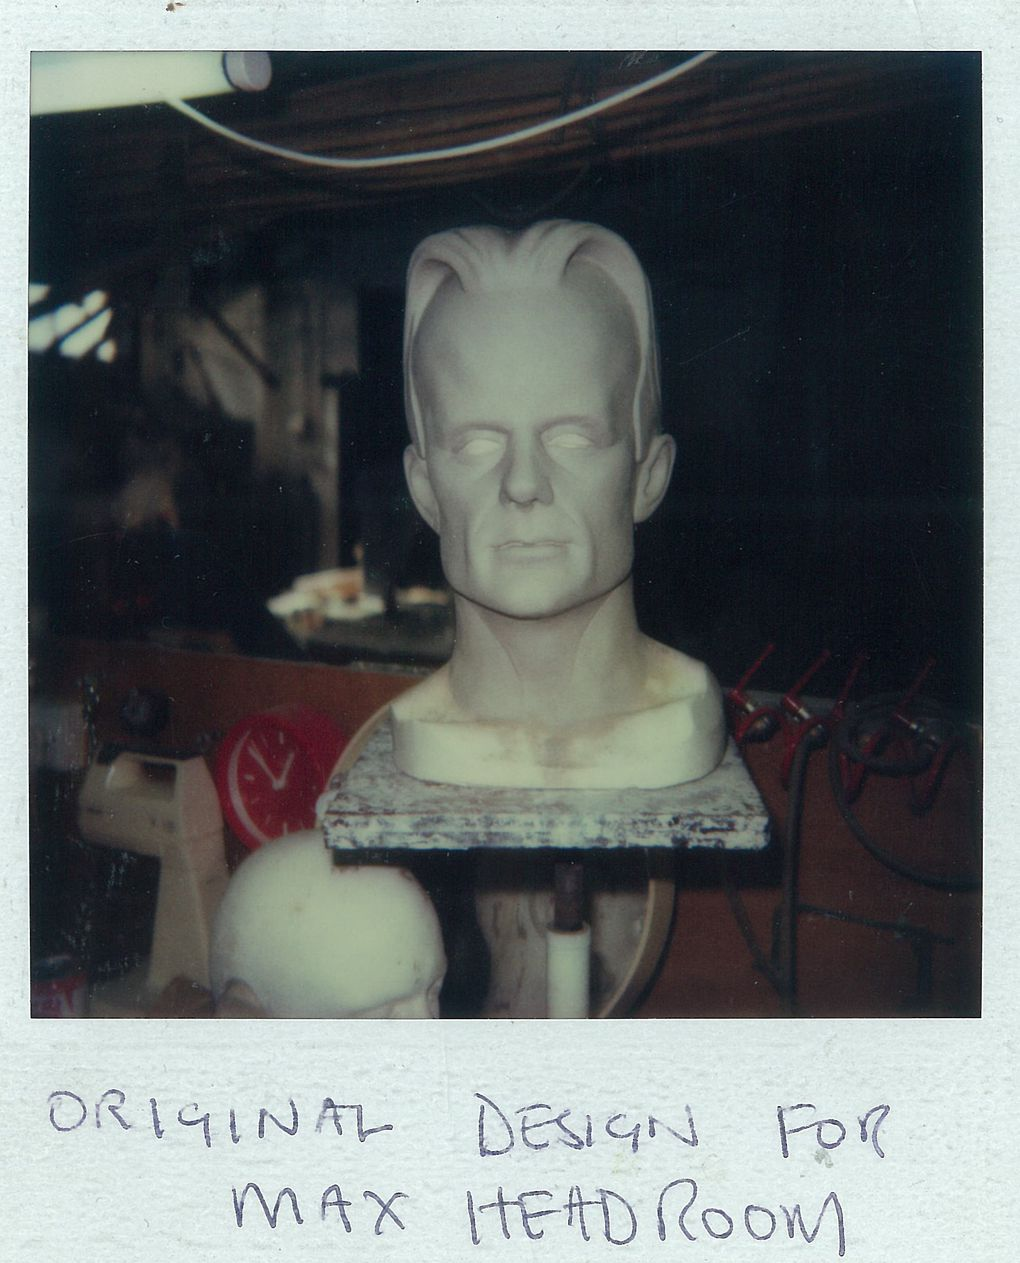 photo essay how make up and visual effects brought max headroom the refined design hews closely to matt frewer s features but sports a slightly different hairstyle image courtesy of john humphreys